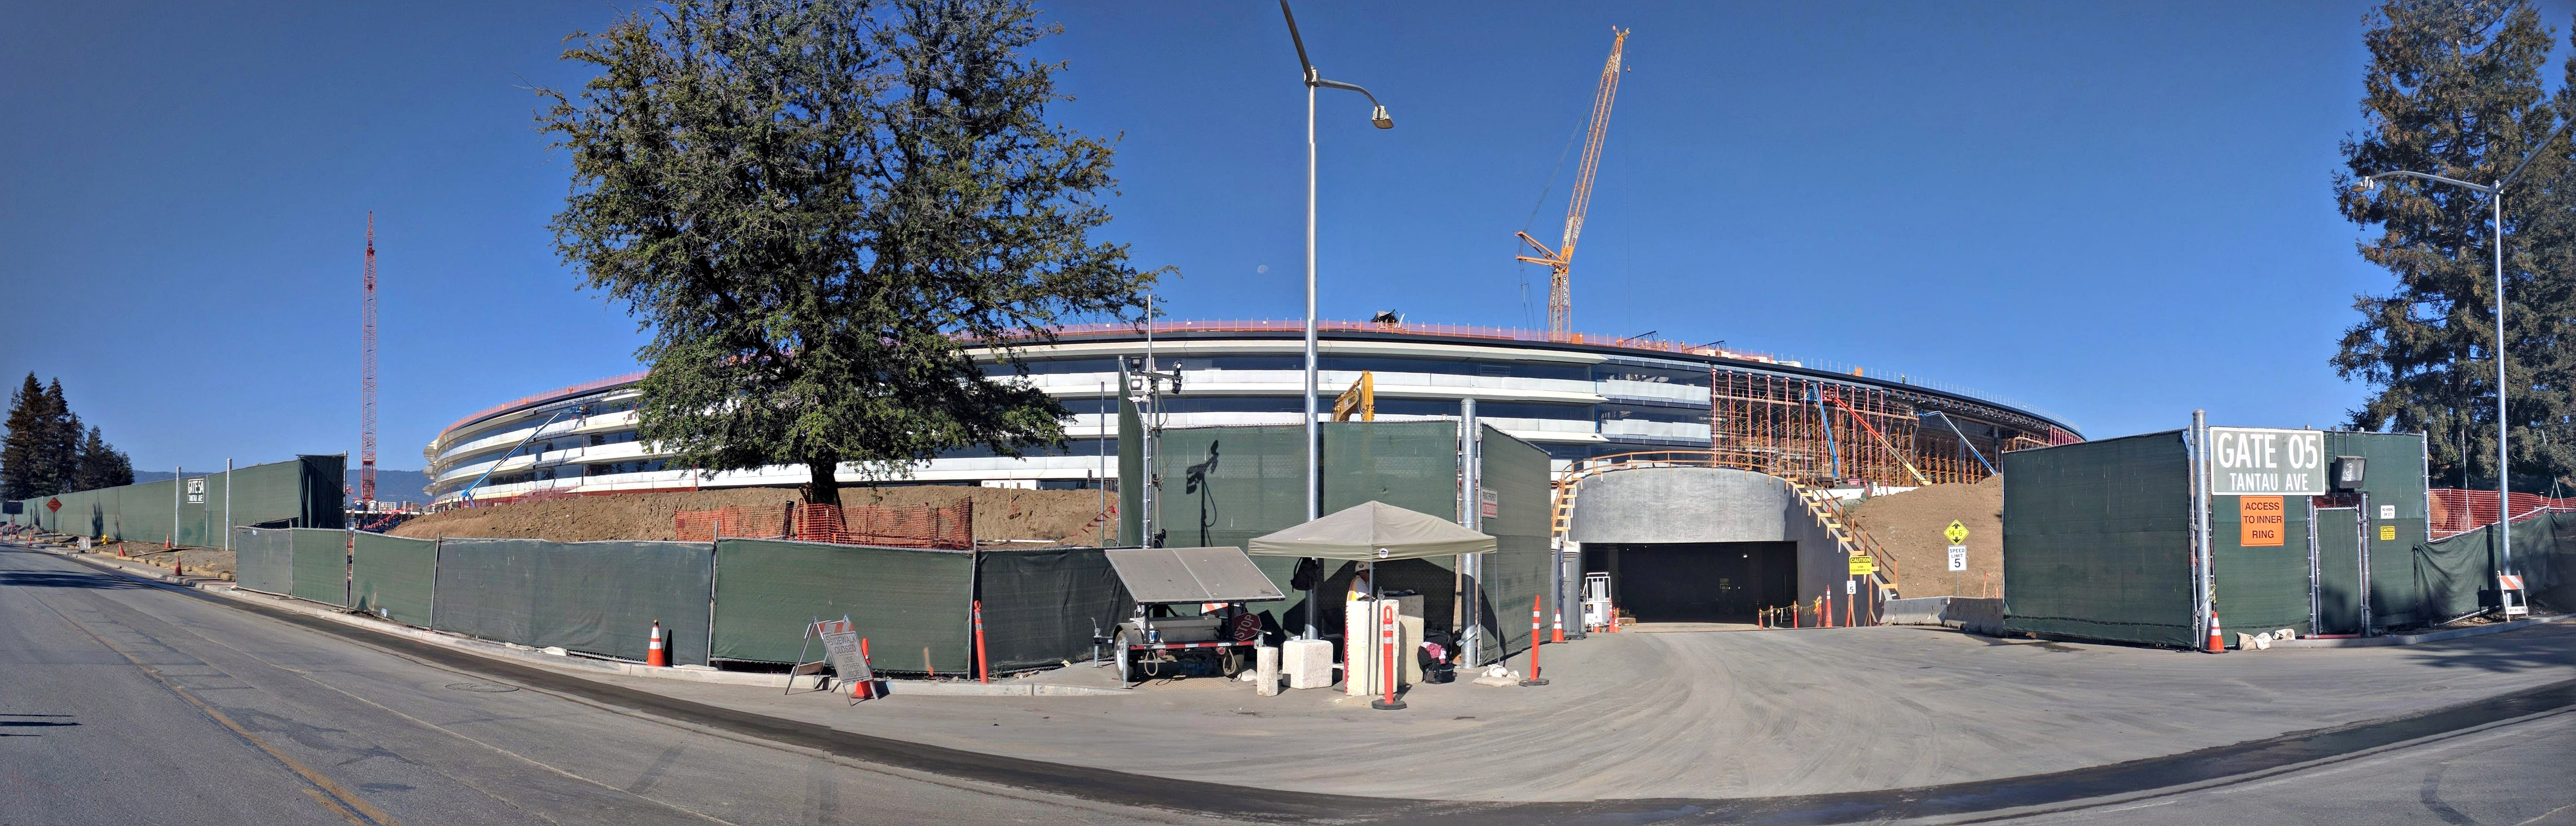 Panorama Of Apple Park Under Construction July 2016